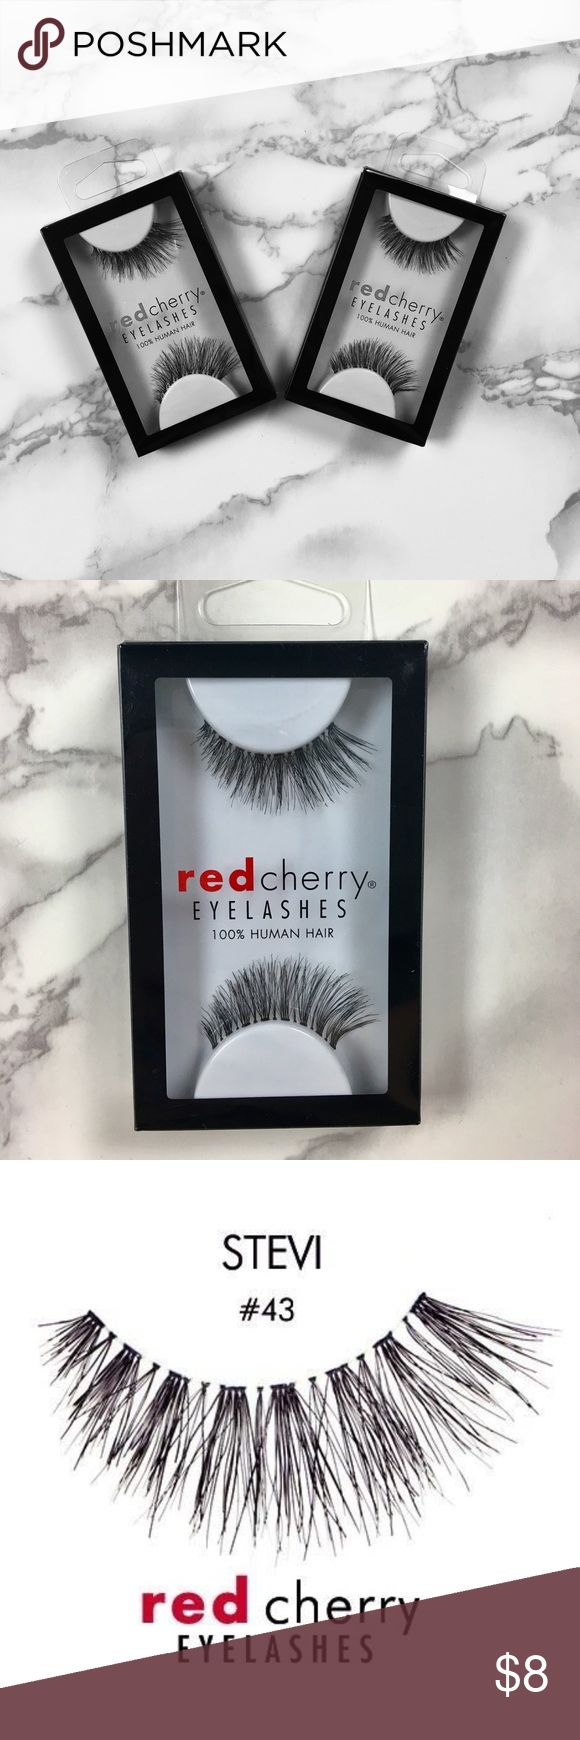 (2 packs) RED CHERRY LASHES #43 STEVI #43 - Stevi Lashes by Red Cherry  Full, swoop, wispy lashes.  Enhance your natural beauty with flawless stealth.  How To Use: These lashes are reusable if properly cared for. Carefully clean after each use by removing the glue with your fingers or tweezers.  Additional Information:  100% Human Hair Cruelty-Free Latex Free Handmade Lightweight Comfortable  Band: 28 mm Lash Length: 15 mm red cherry lashes Makeup False Eyelashes